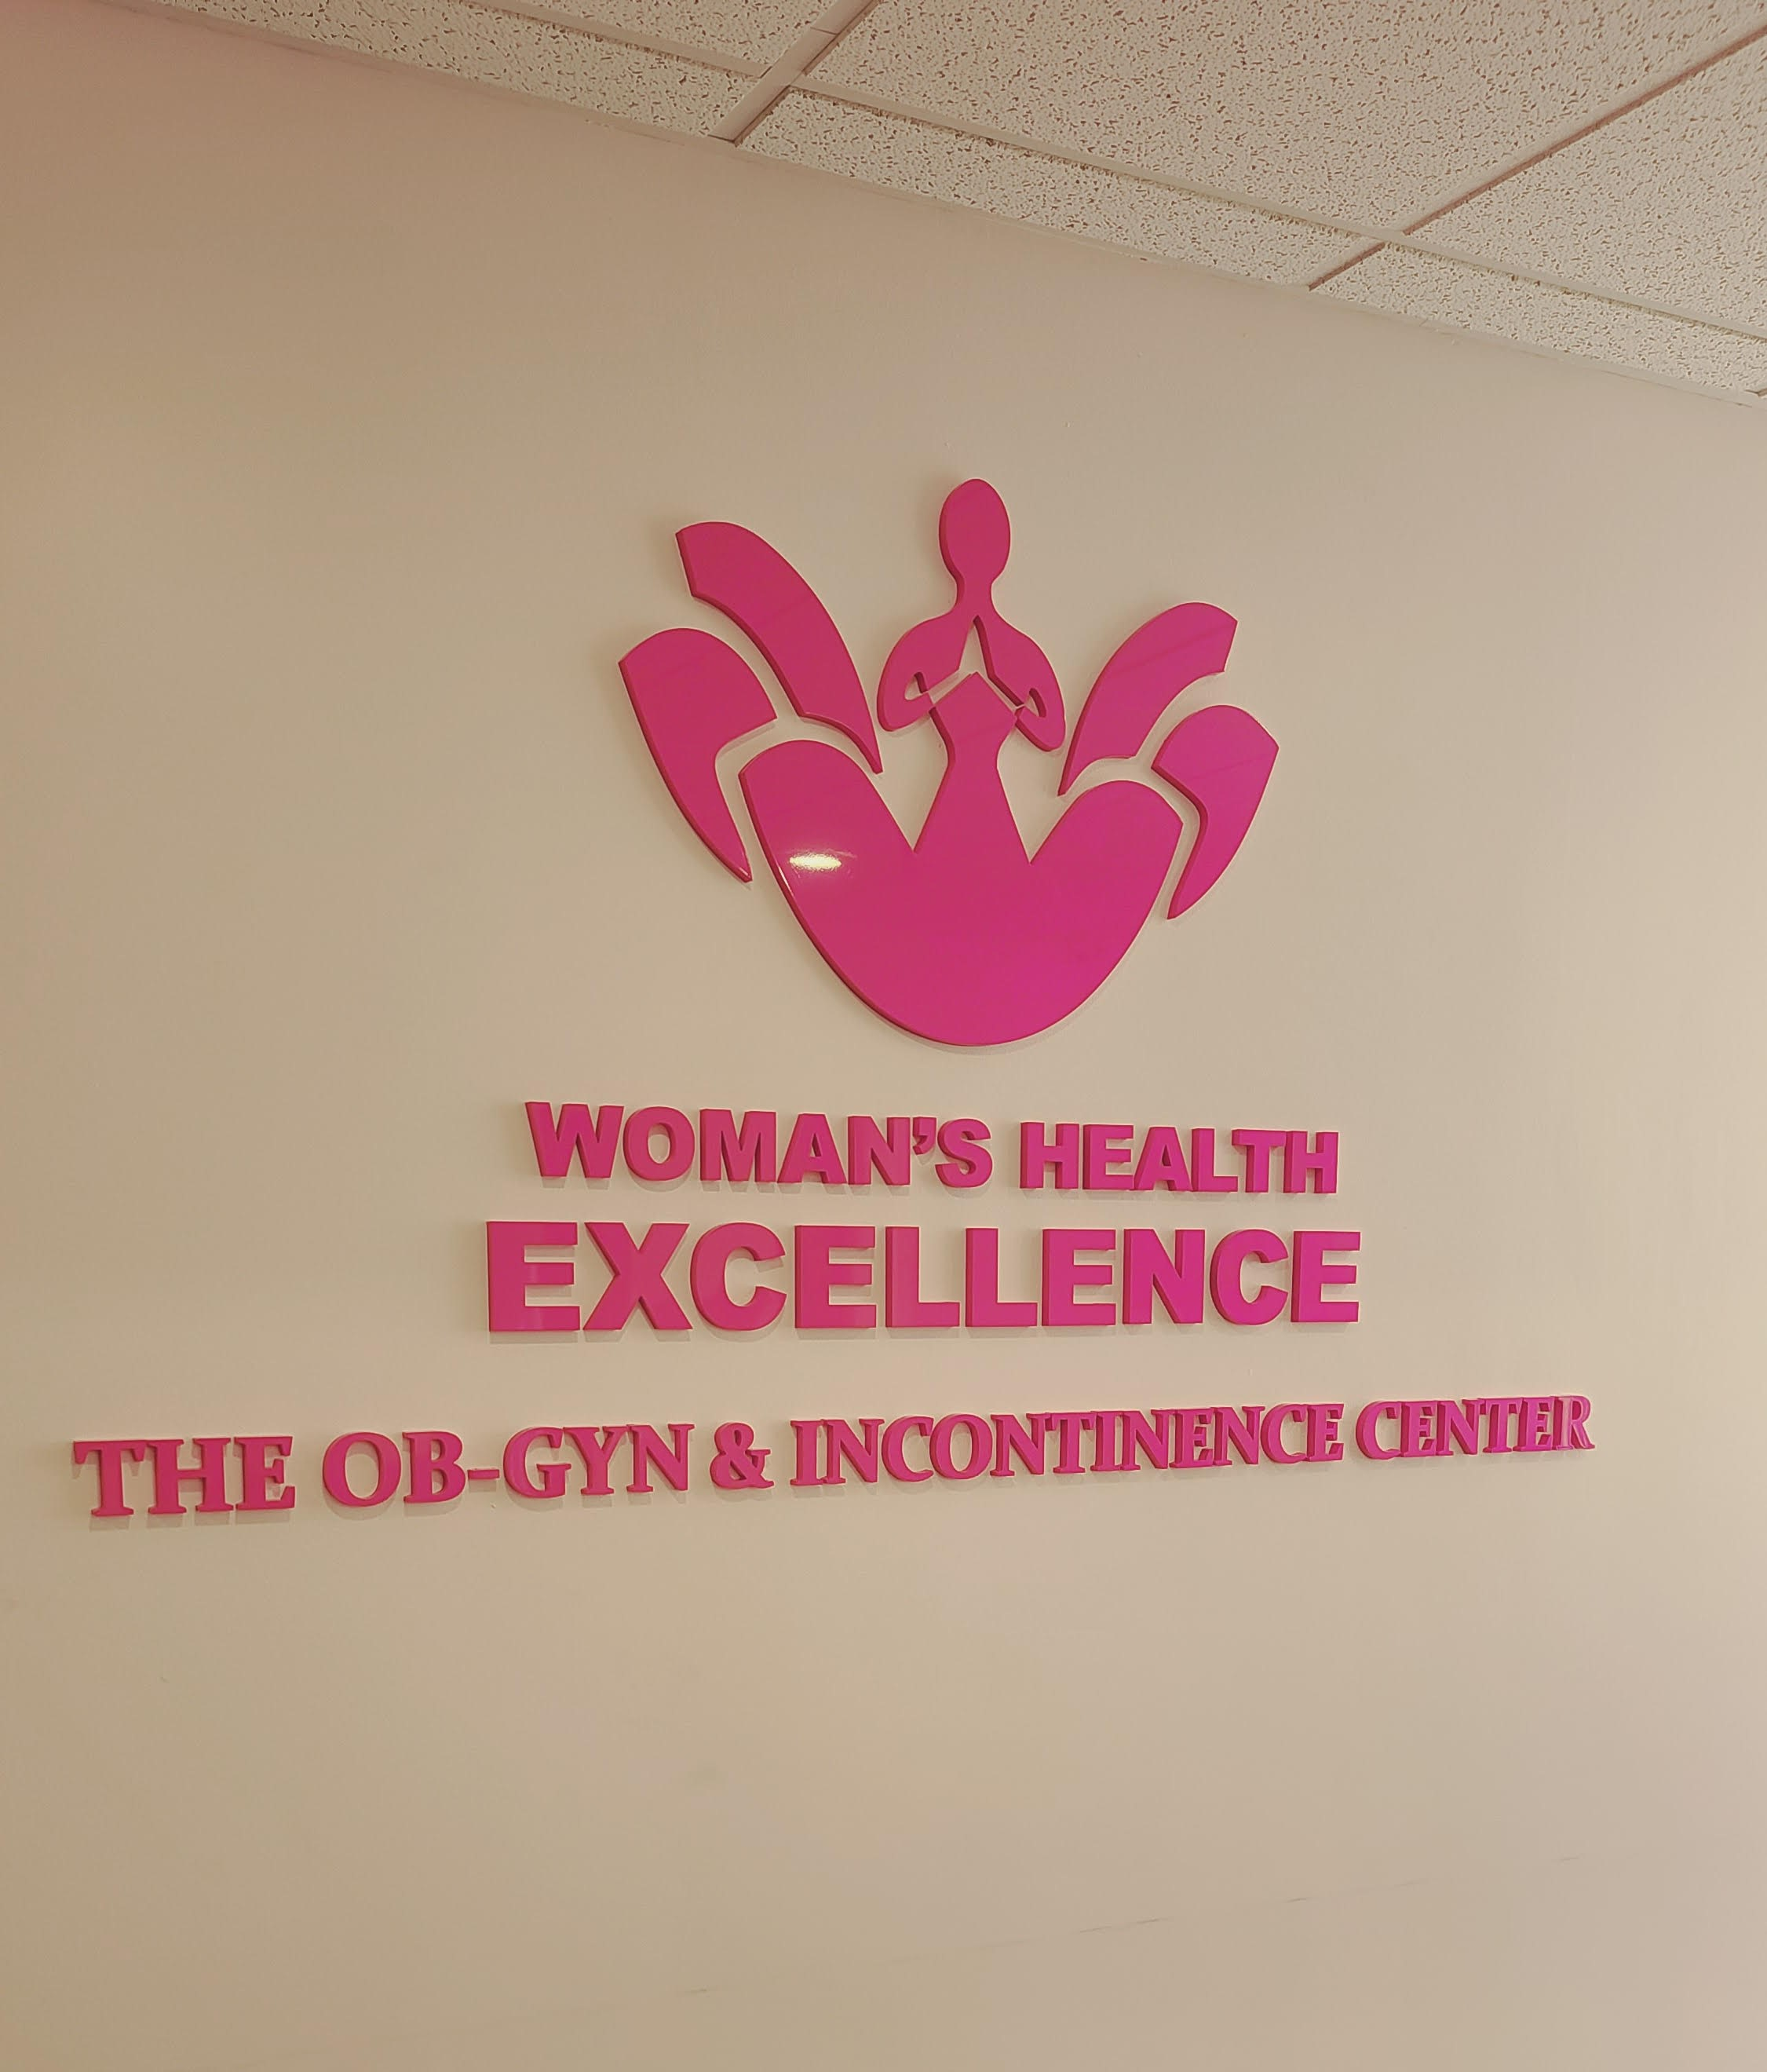 We fabricated and installed this eye-catching acrylic clinic sign for The OB-Gyn and Incontinence Center in Arcadia.